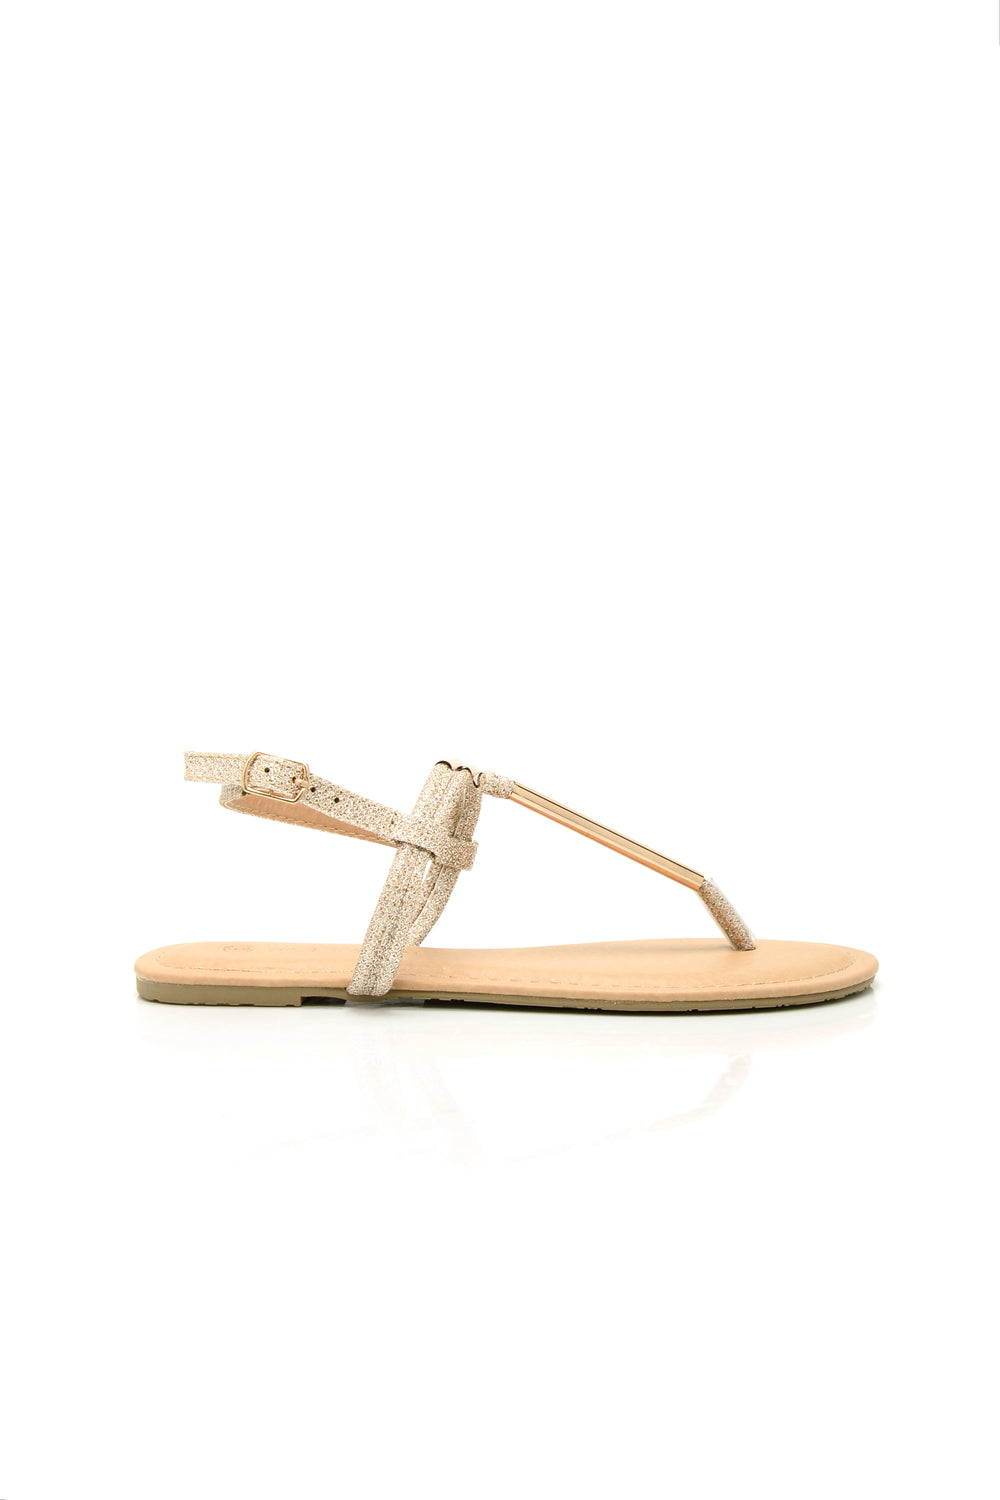 Glitter Gaze Sandal - Rose Gold